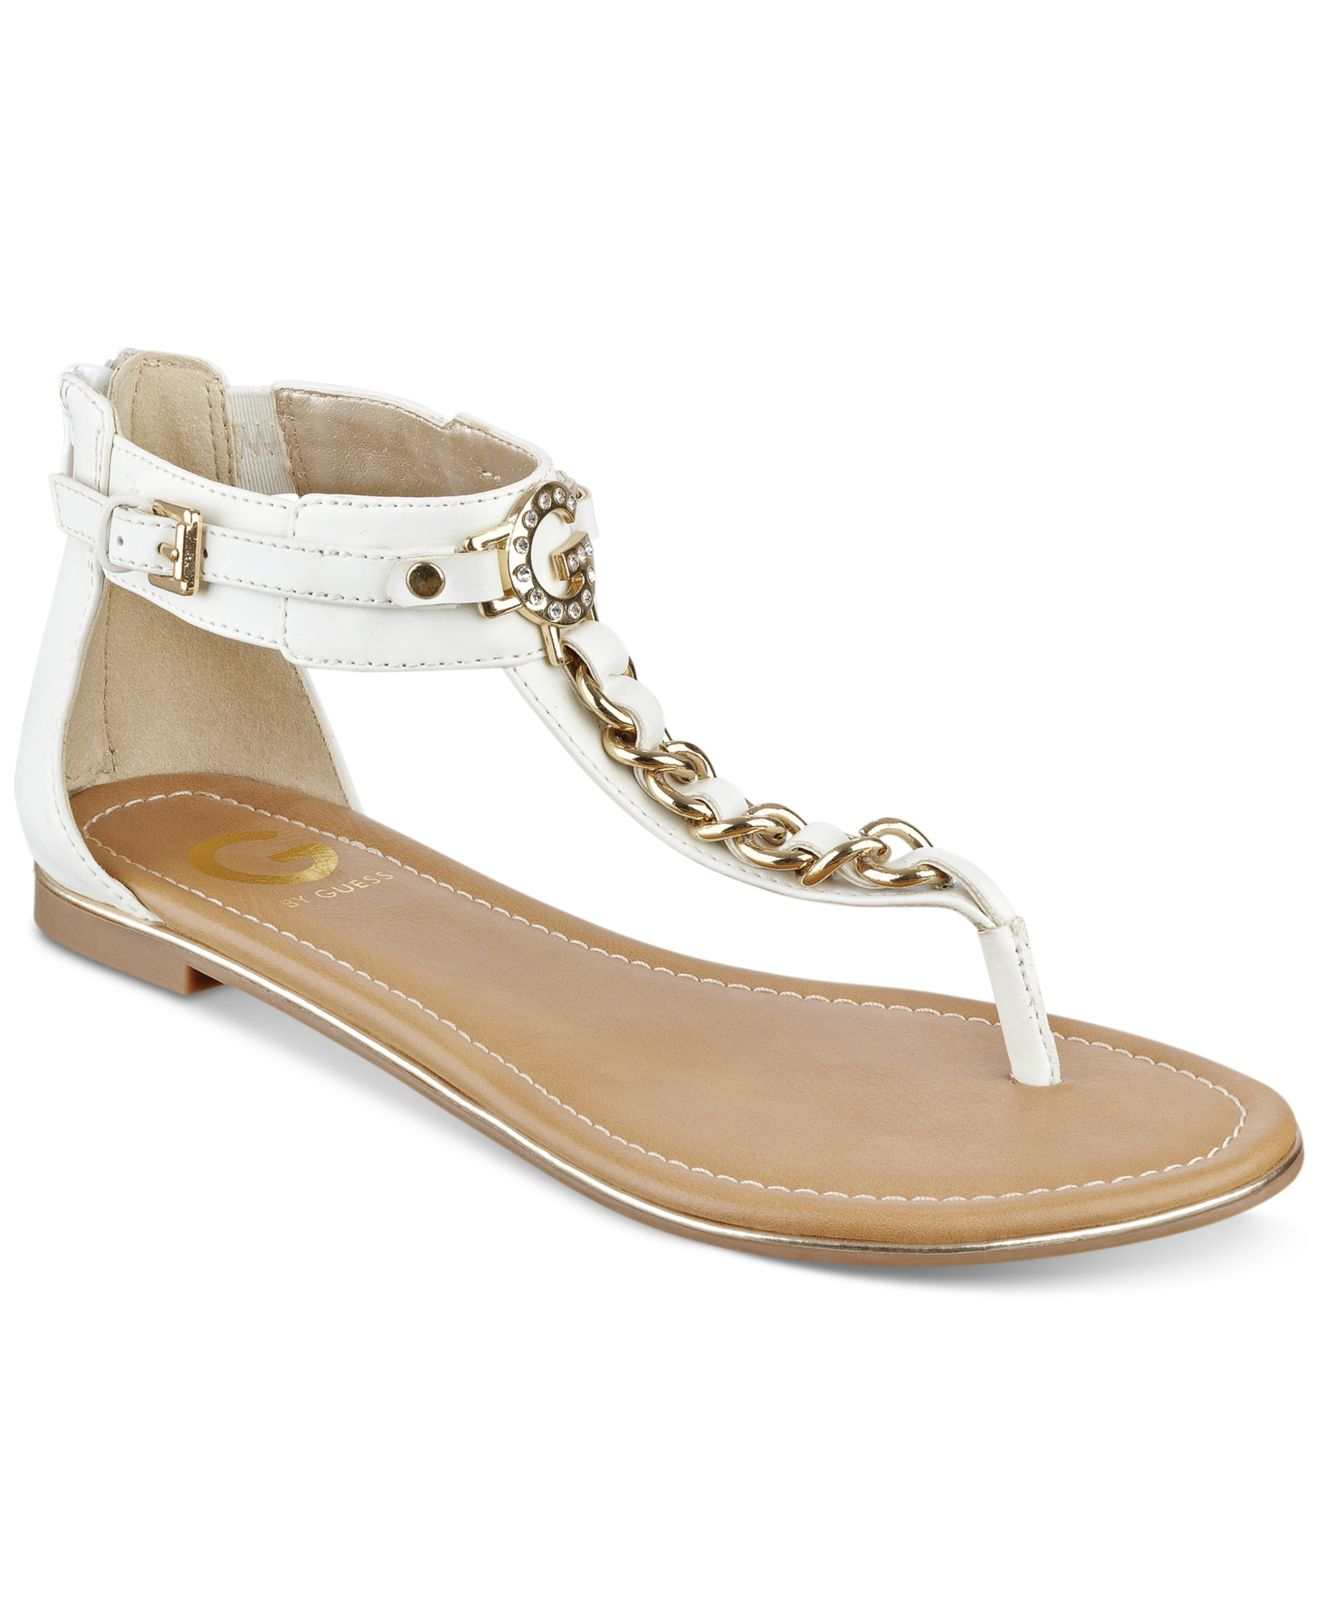 ca0e7ea9986657 Lyst - G by Guess Daniel T-strap Flat Sandals in White